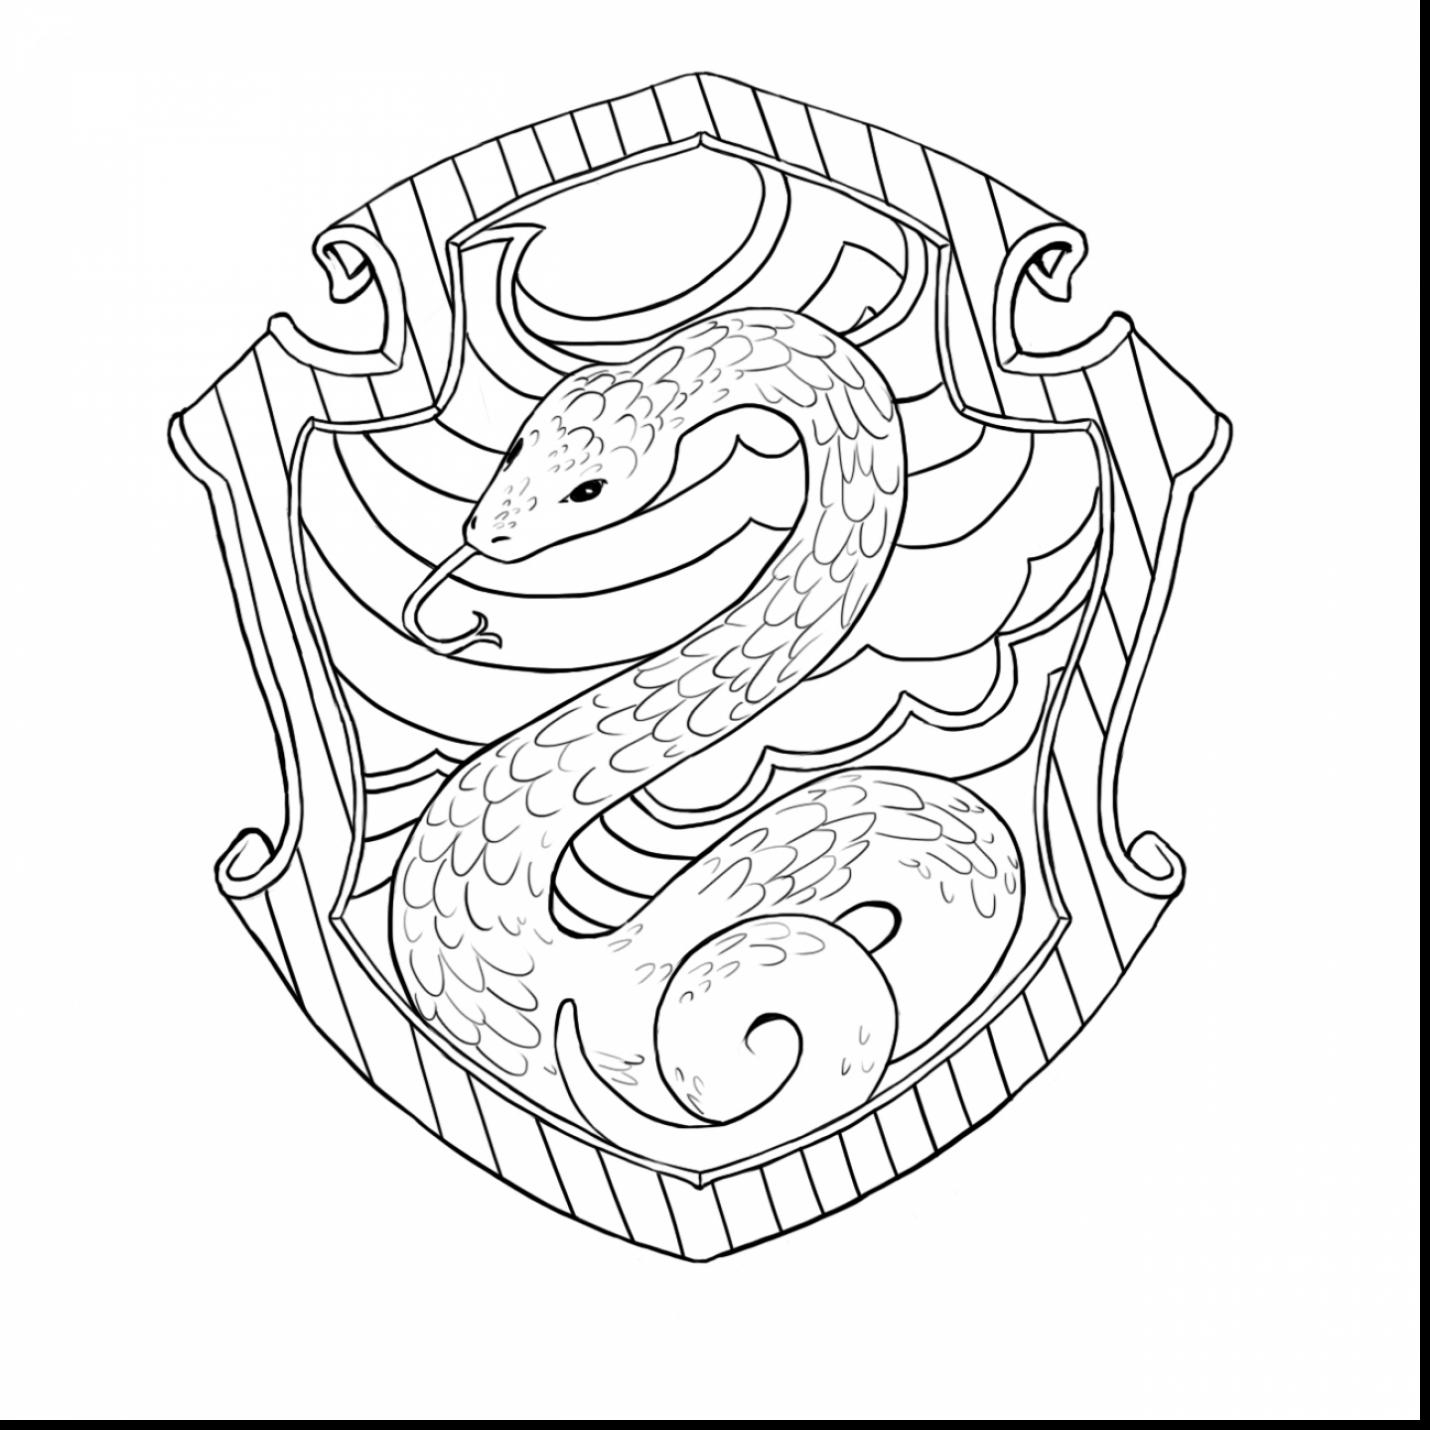 1430x1430 Mind Blowing Harry Potter Coloring Pages To Print